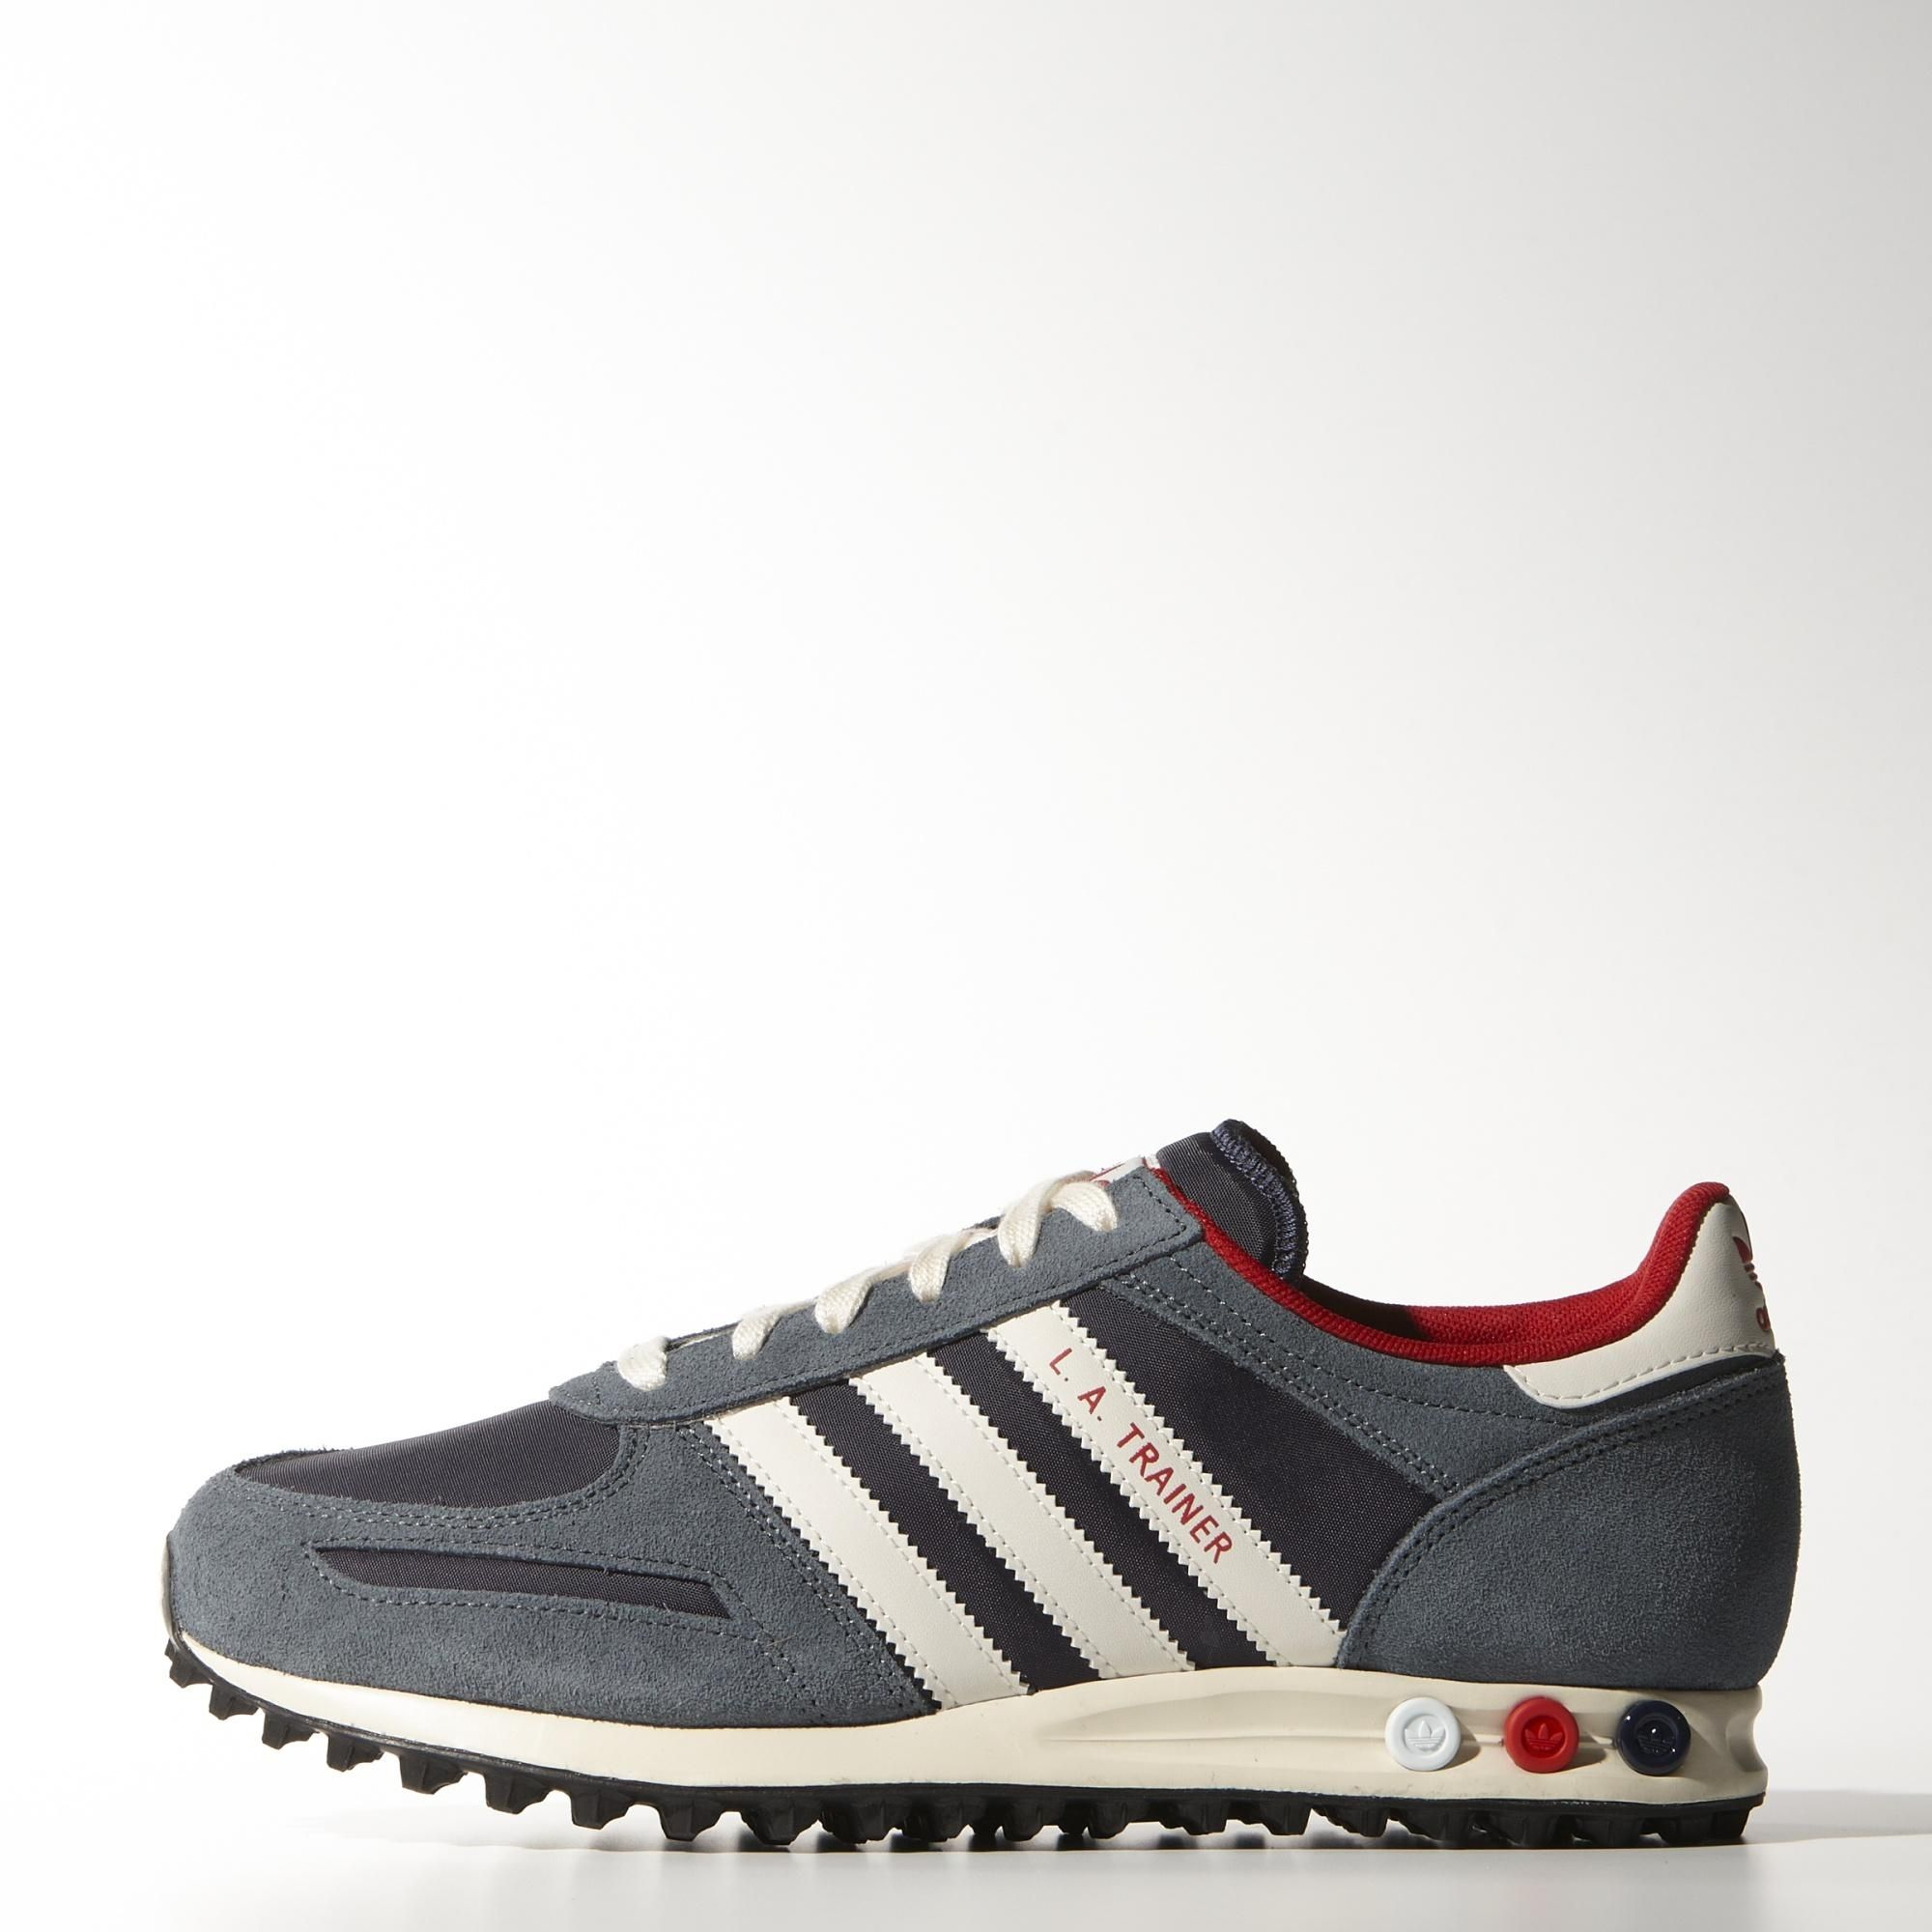 These Men S La Trainer Shoes Update The 80s Legend In Sport Inspired Colours Made With A Mesh And Leather Upper They Still Have The Ico Adidas Schuhe Adidas Und Schuhe